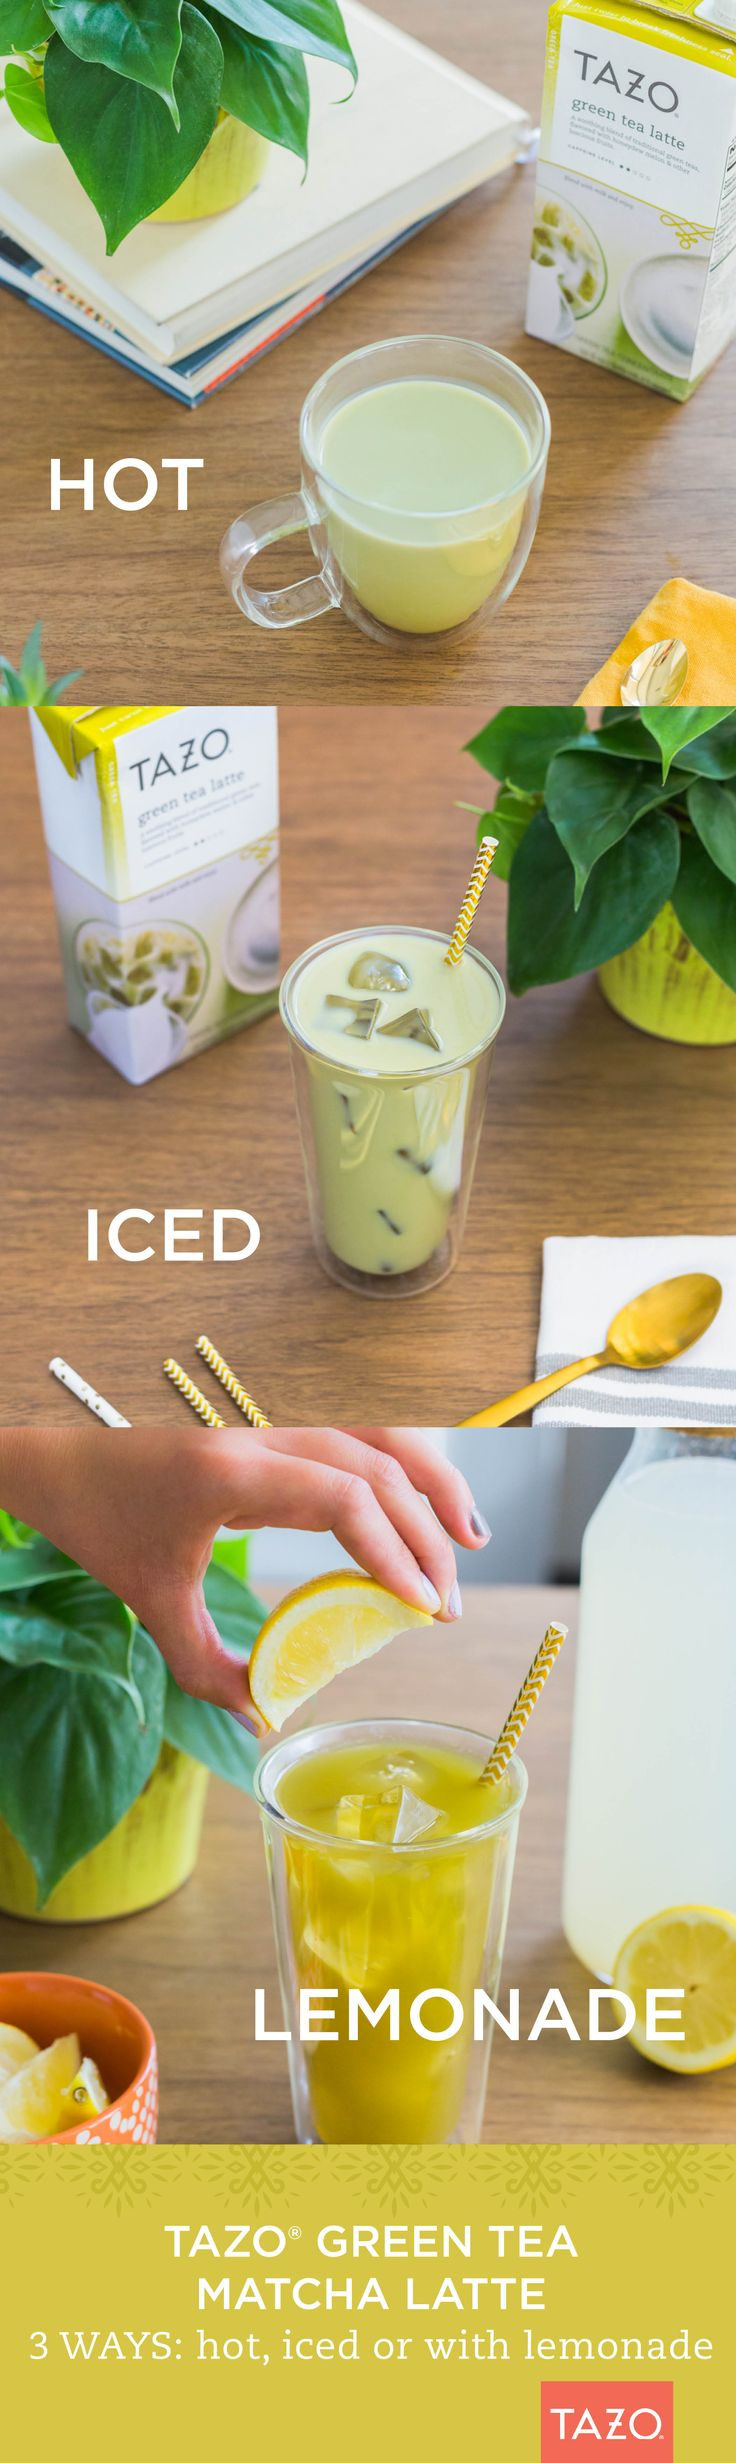 Mix it up with our Tazo Green Tea Matcha Latte recipes. Try it hot. Try it over ice. Better yet, try with lemonade!